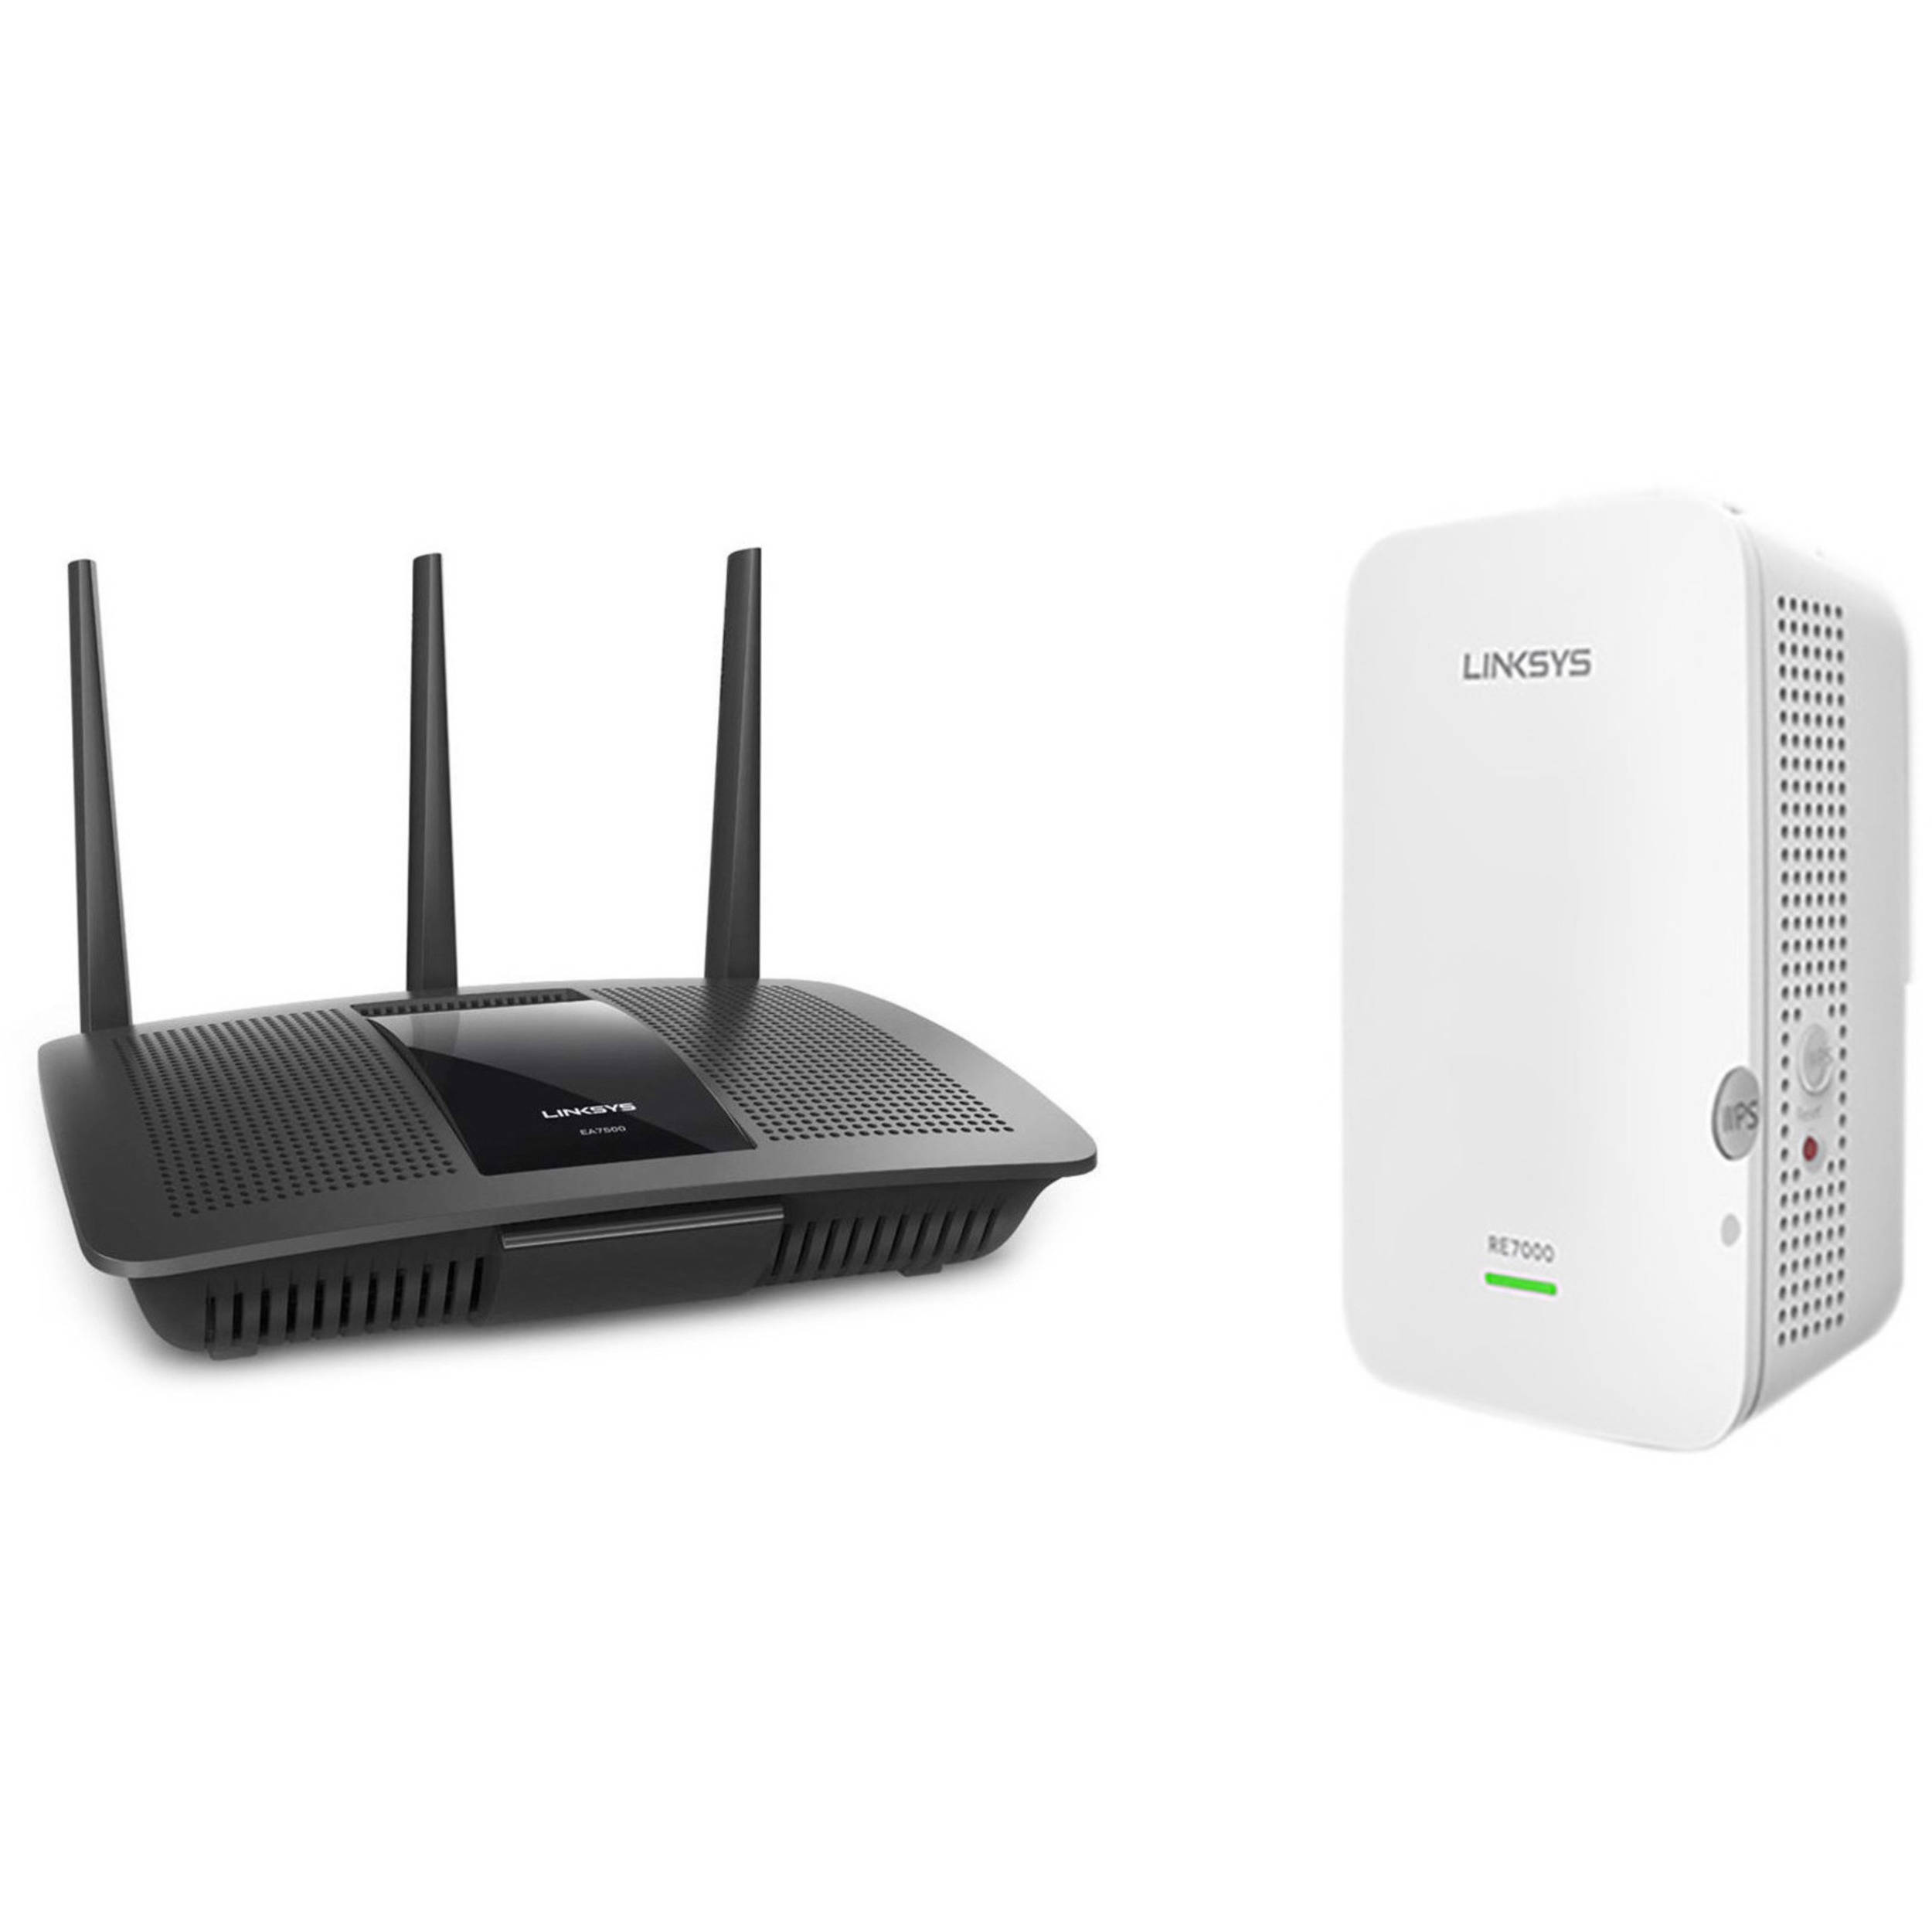 Linksys EA7500 Max-Stream Dual-Band Wireless-AC1900 Gigabit Router Kit with  MAX STREAM Dual-Band Range Extender